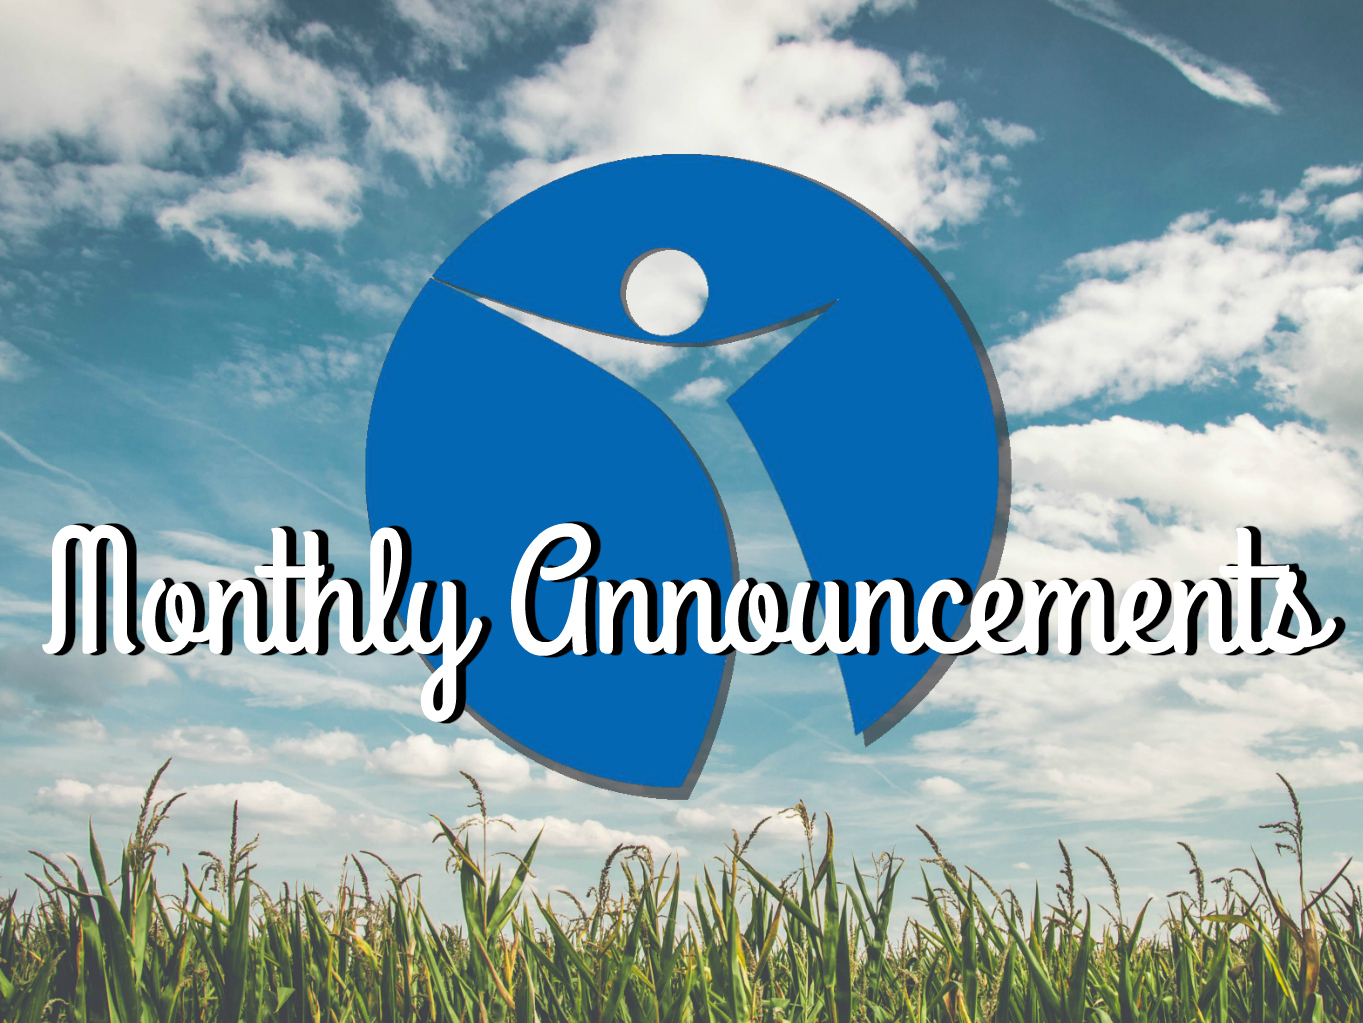 Monthly Announcements (4x3) 004.jpg